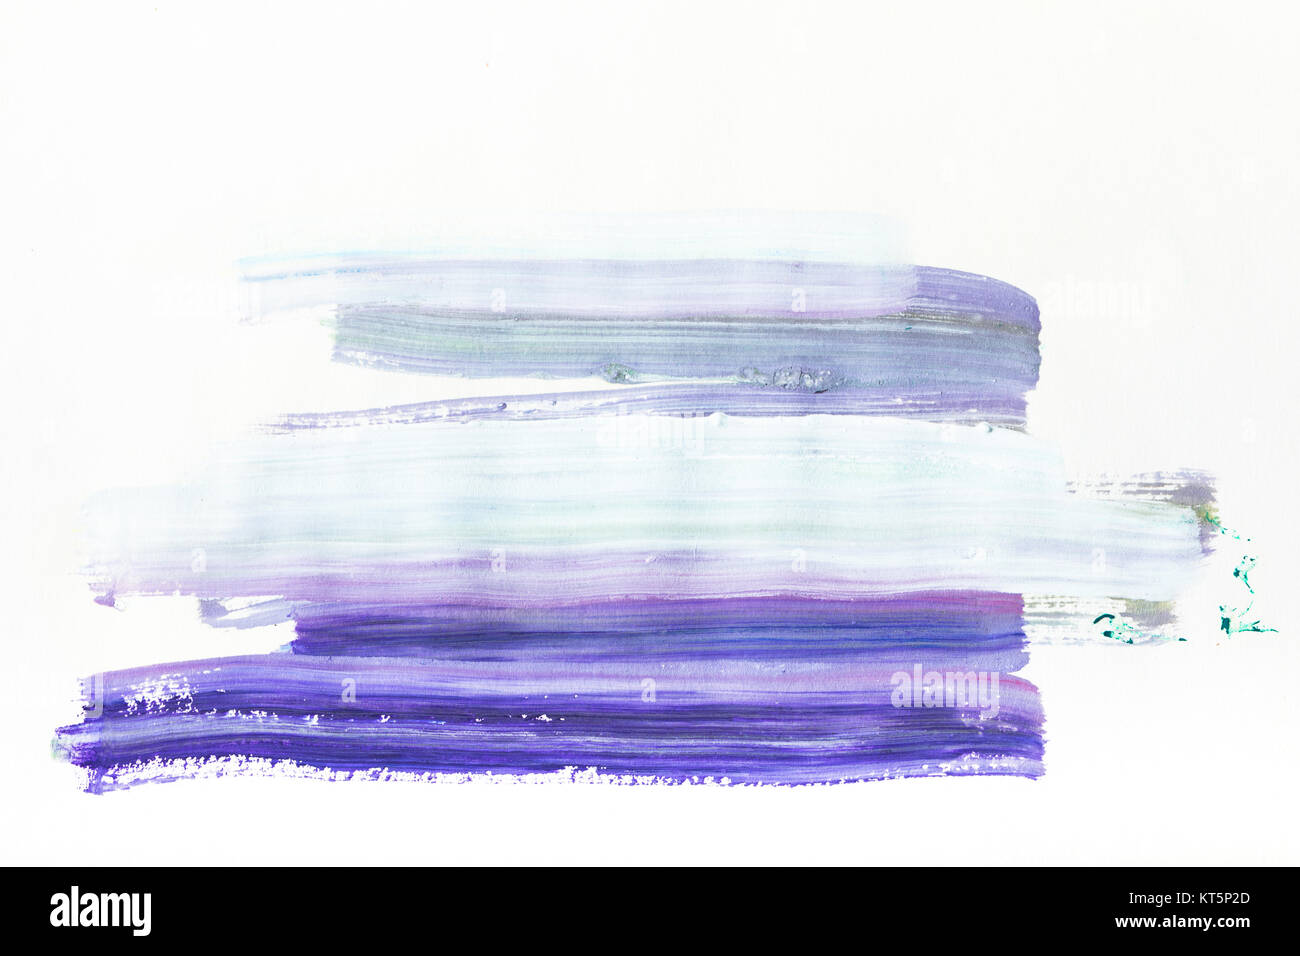 abstract painting with dark and light blue brush strokes on white - Stock Image